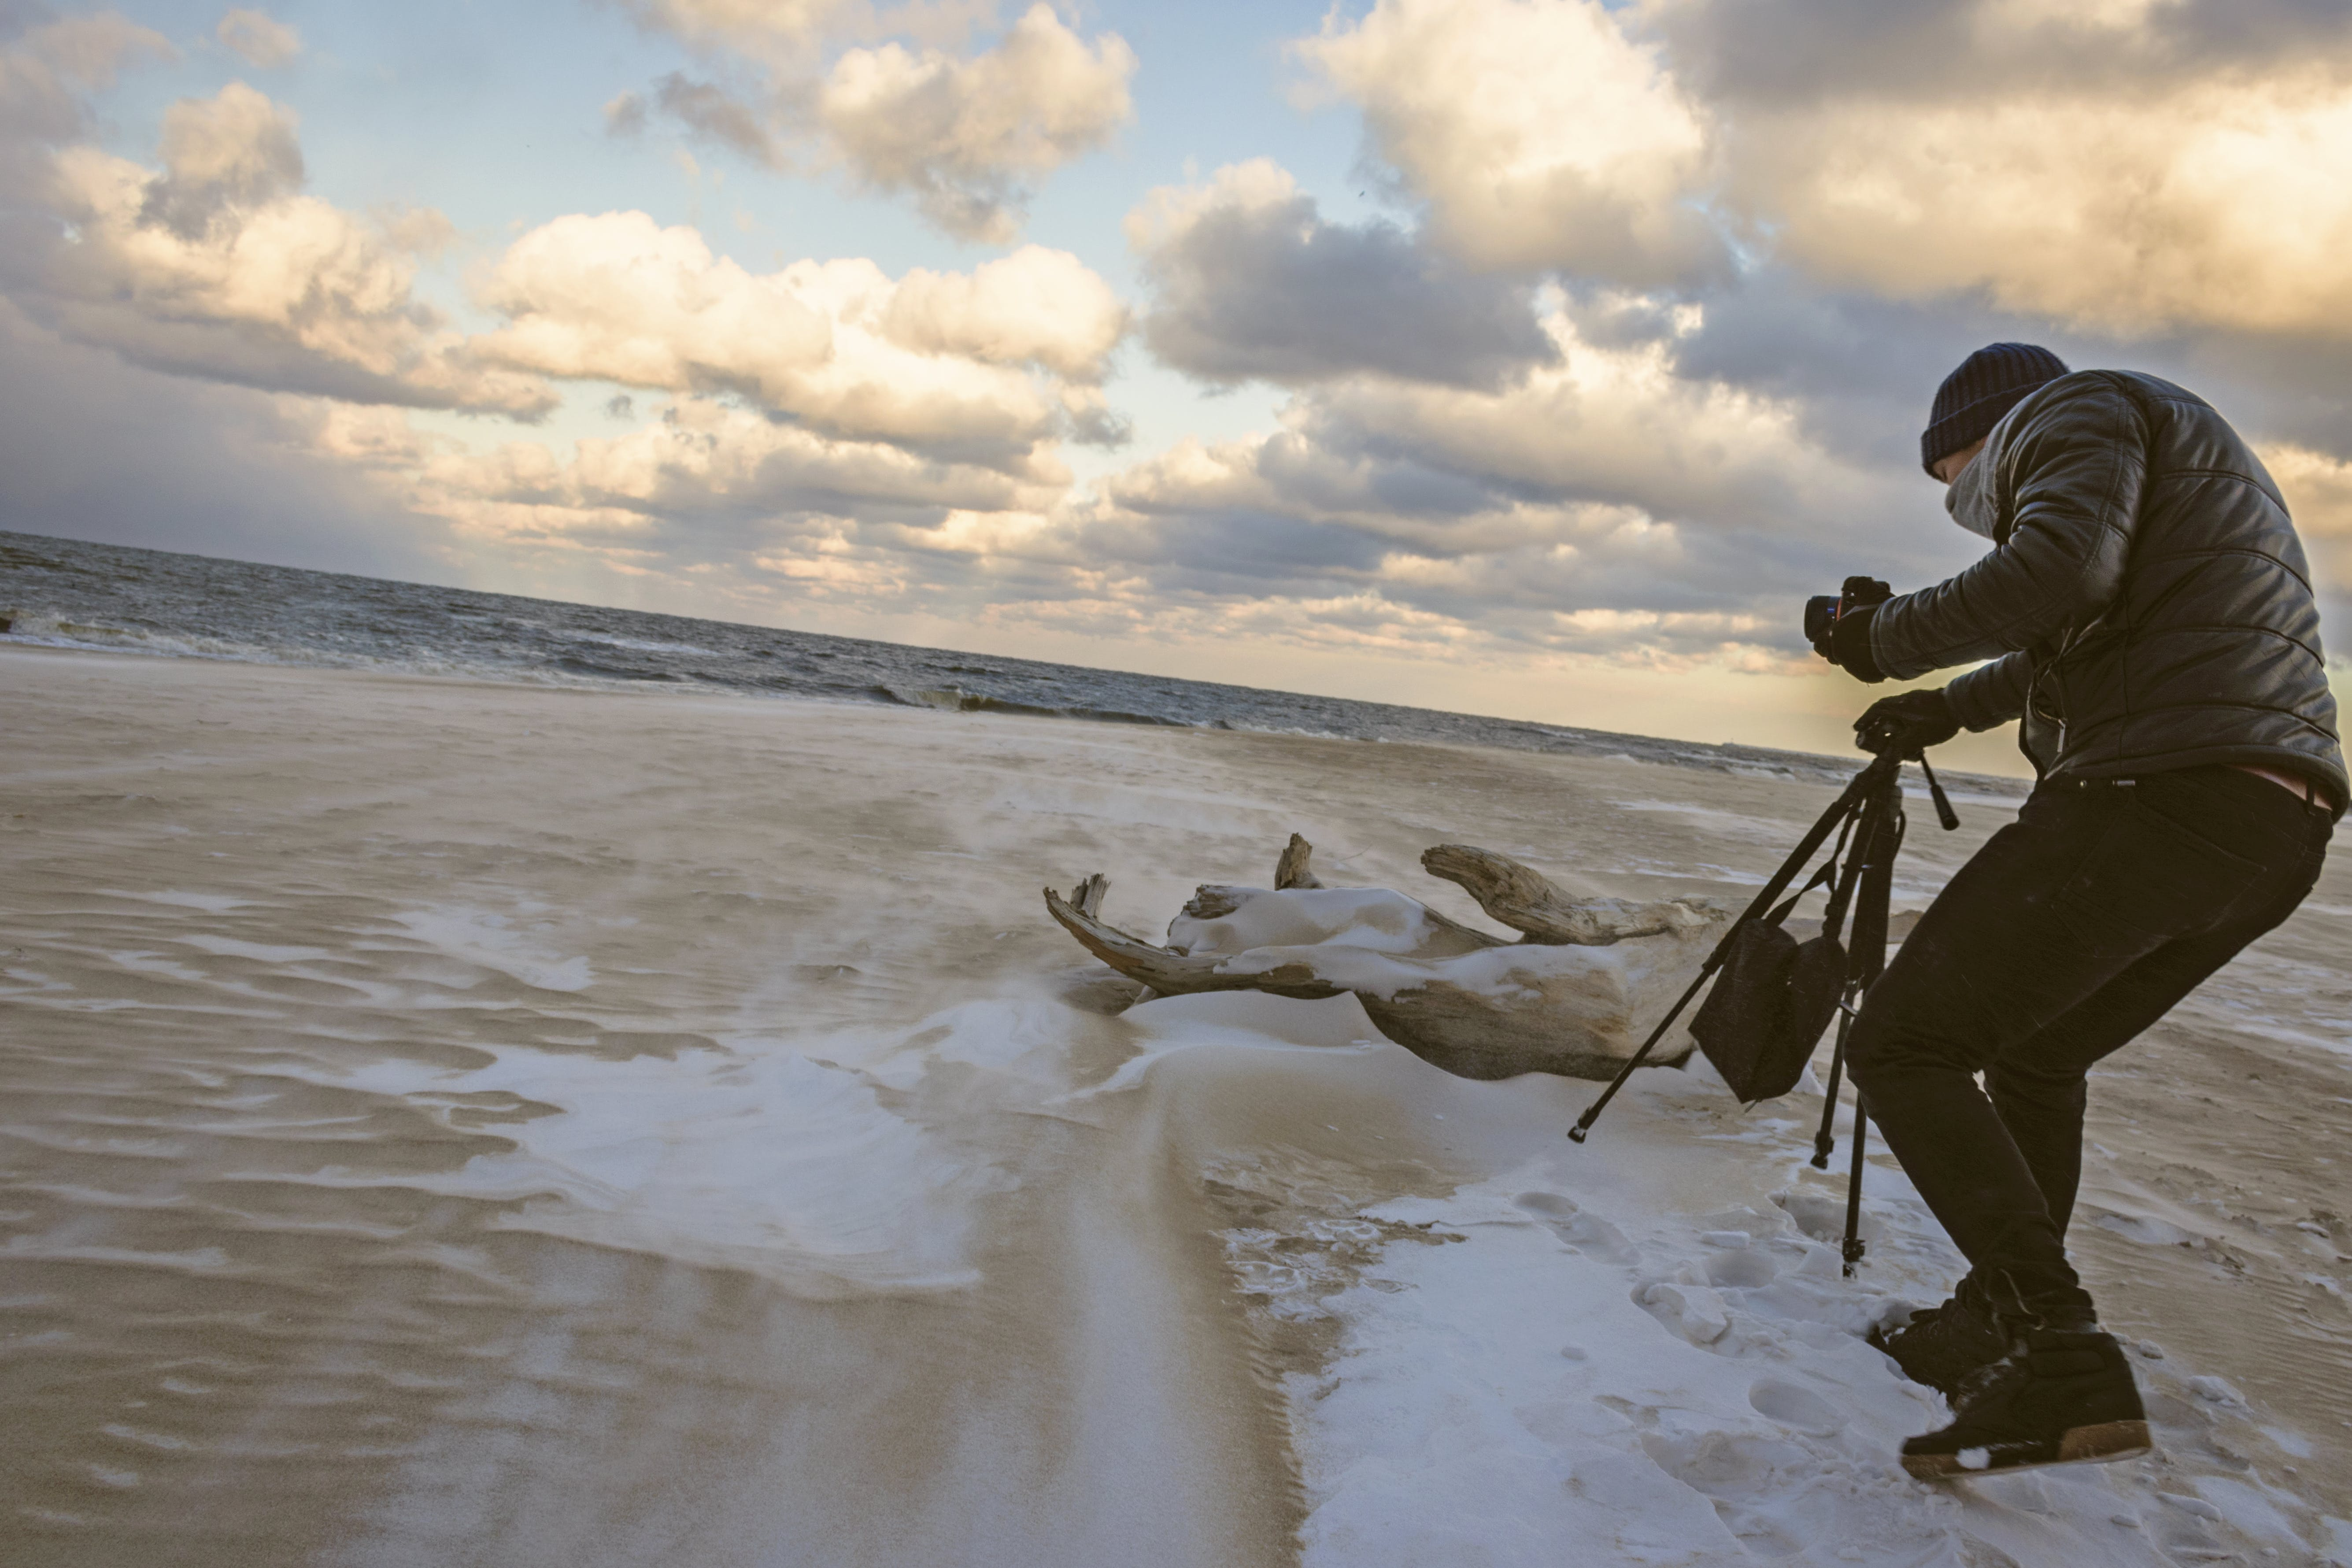 Man in Black Bubble Jacket Walking on Seashore While Holding Black Camera Tripod